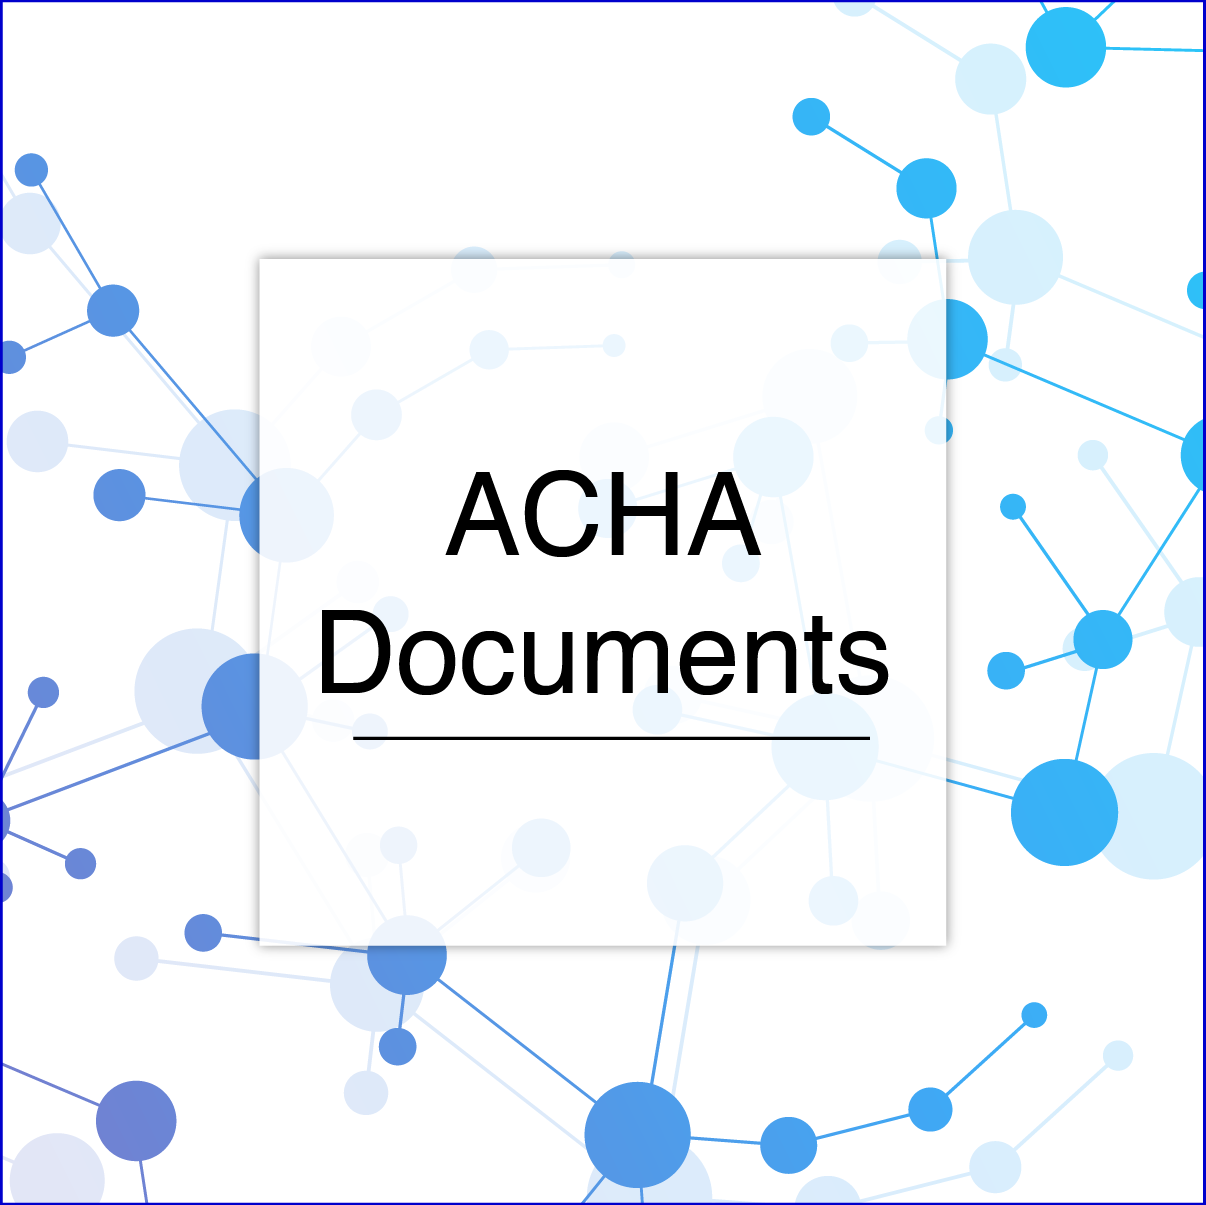 ACHA Documents